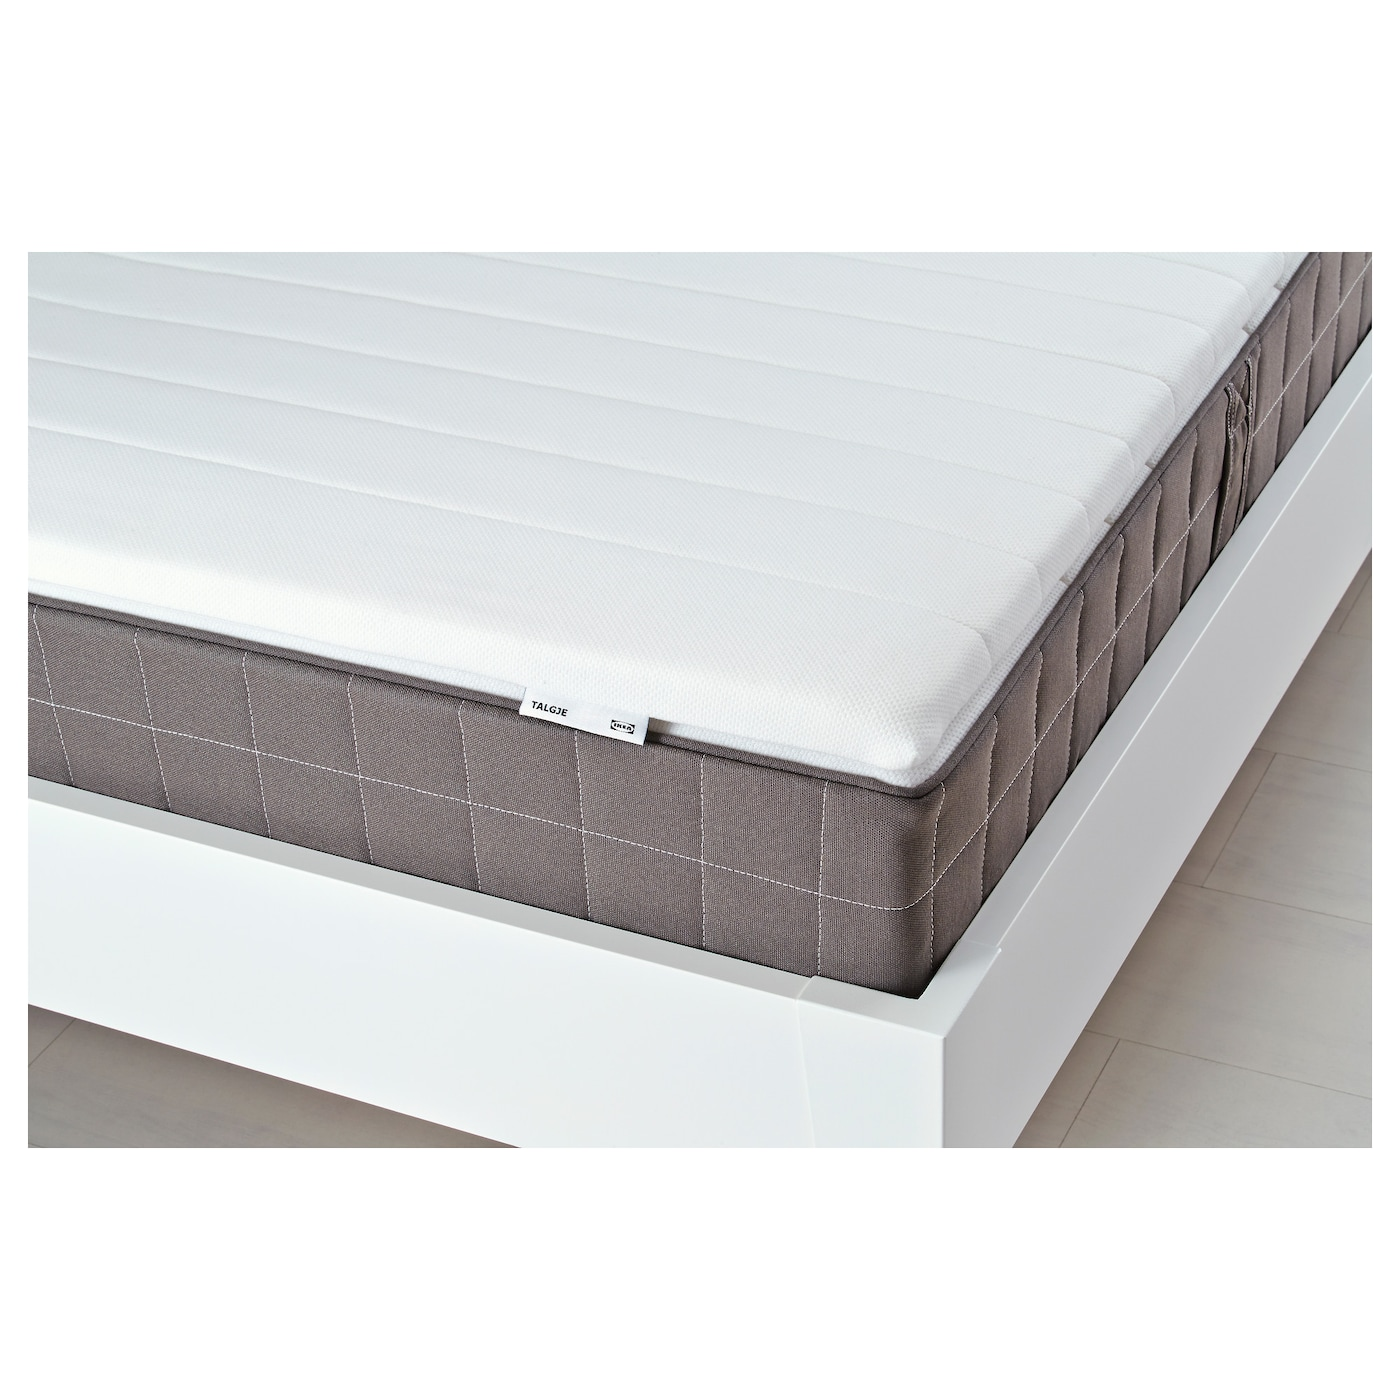 IKEA TALGJE mattress topper Foam filling provides a soft sleep surface.